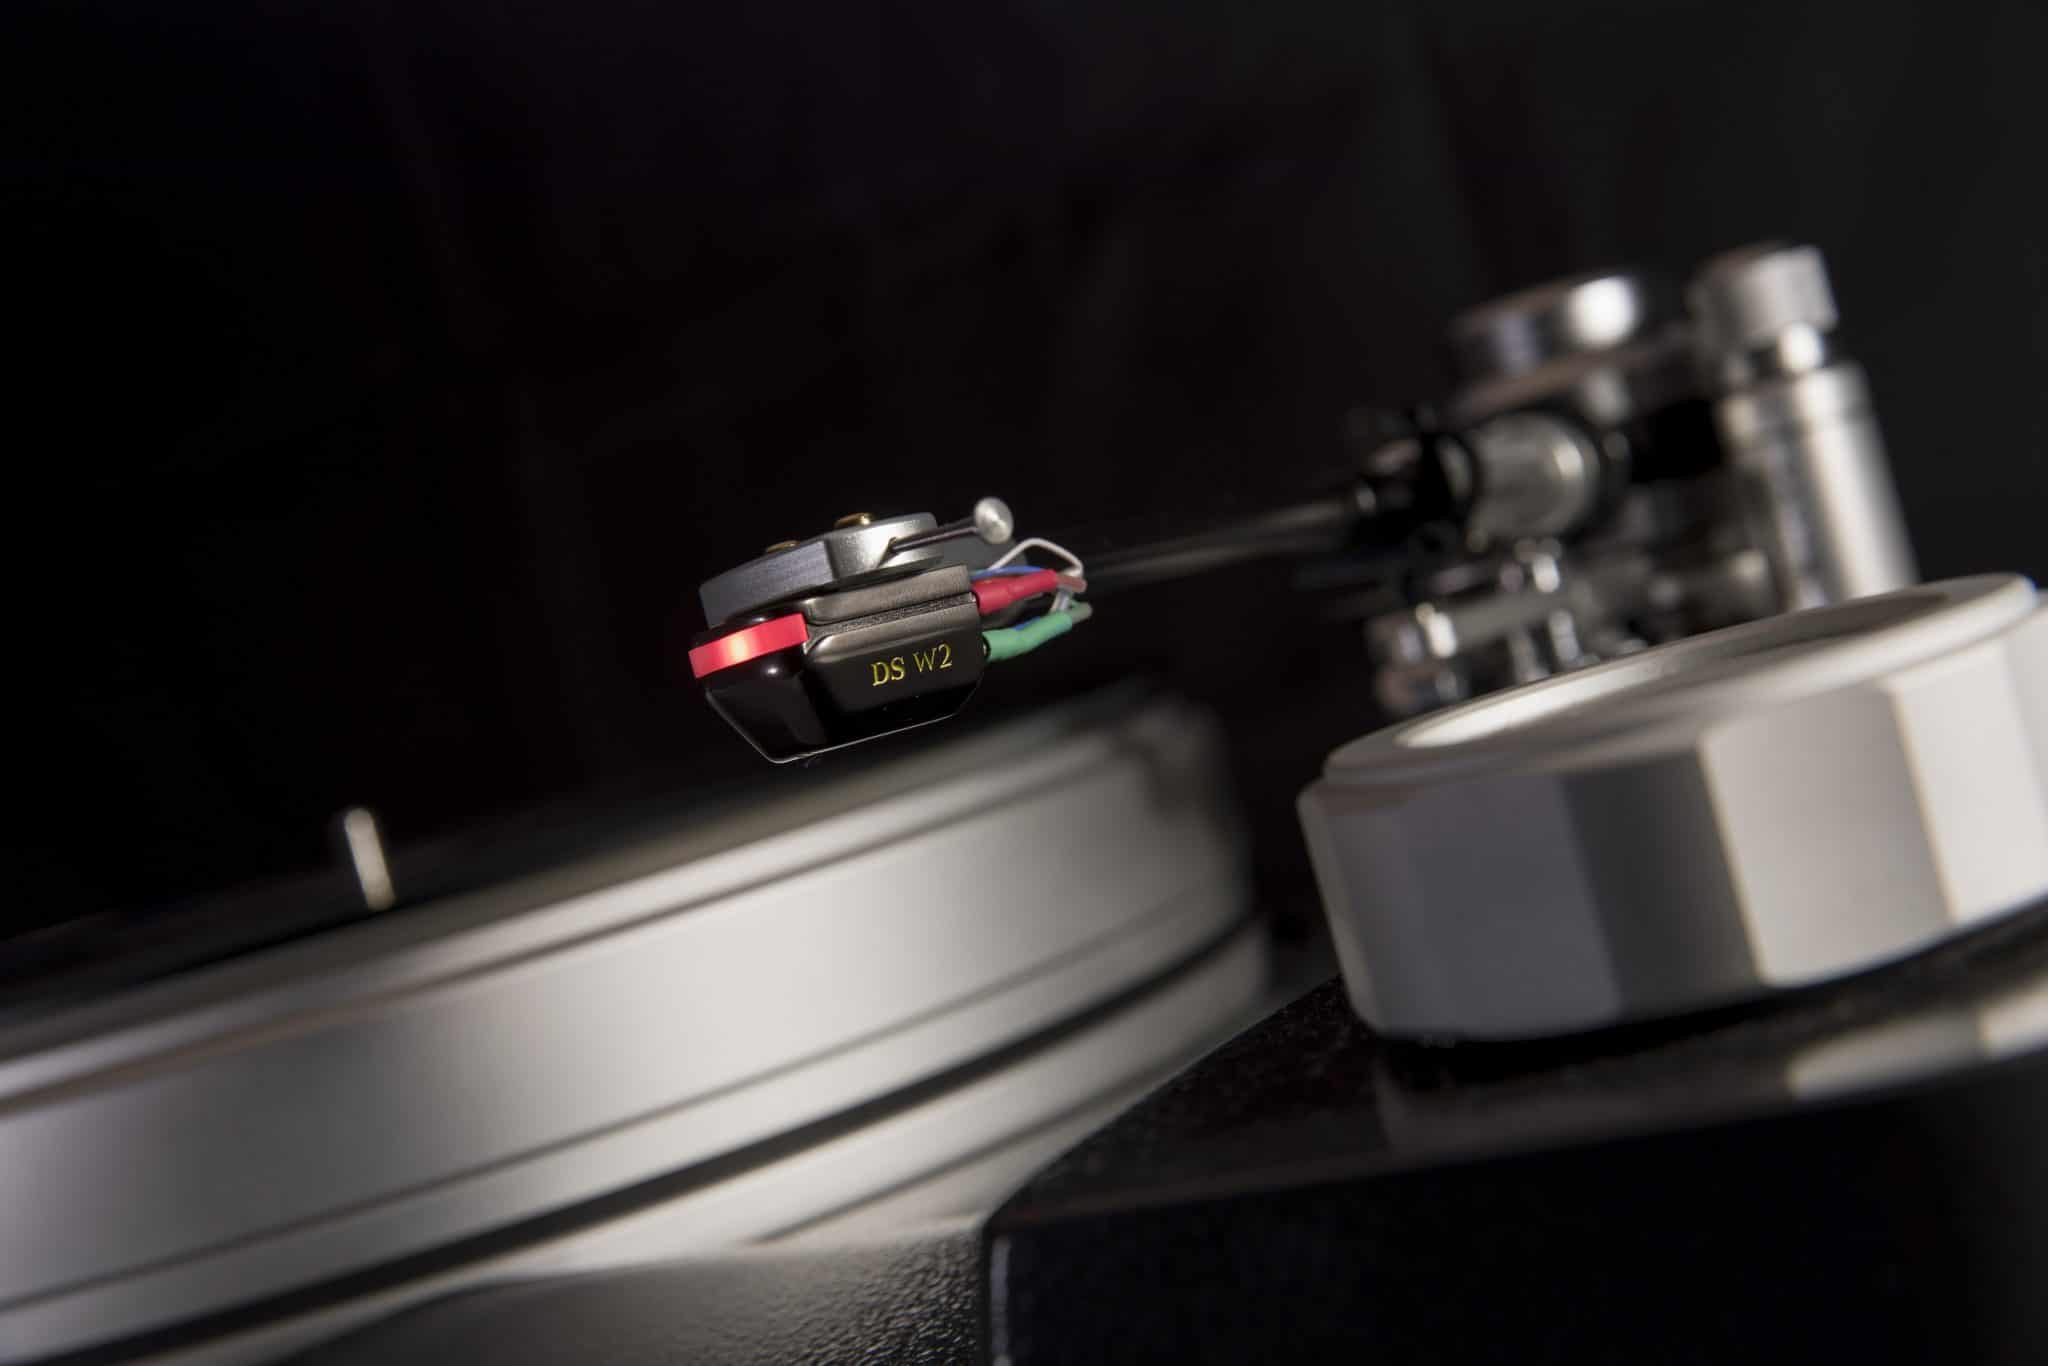 DS-W2 Cartridge From DS Audio